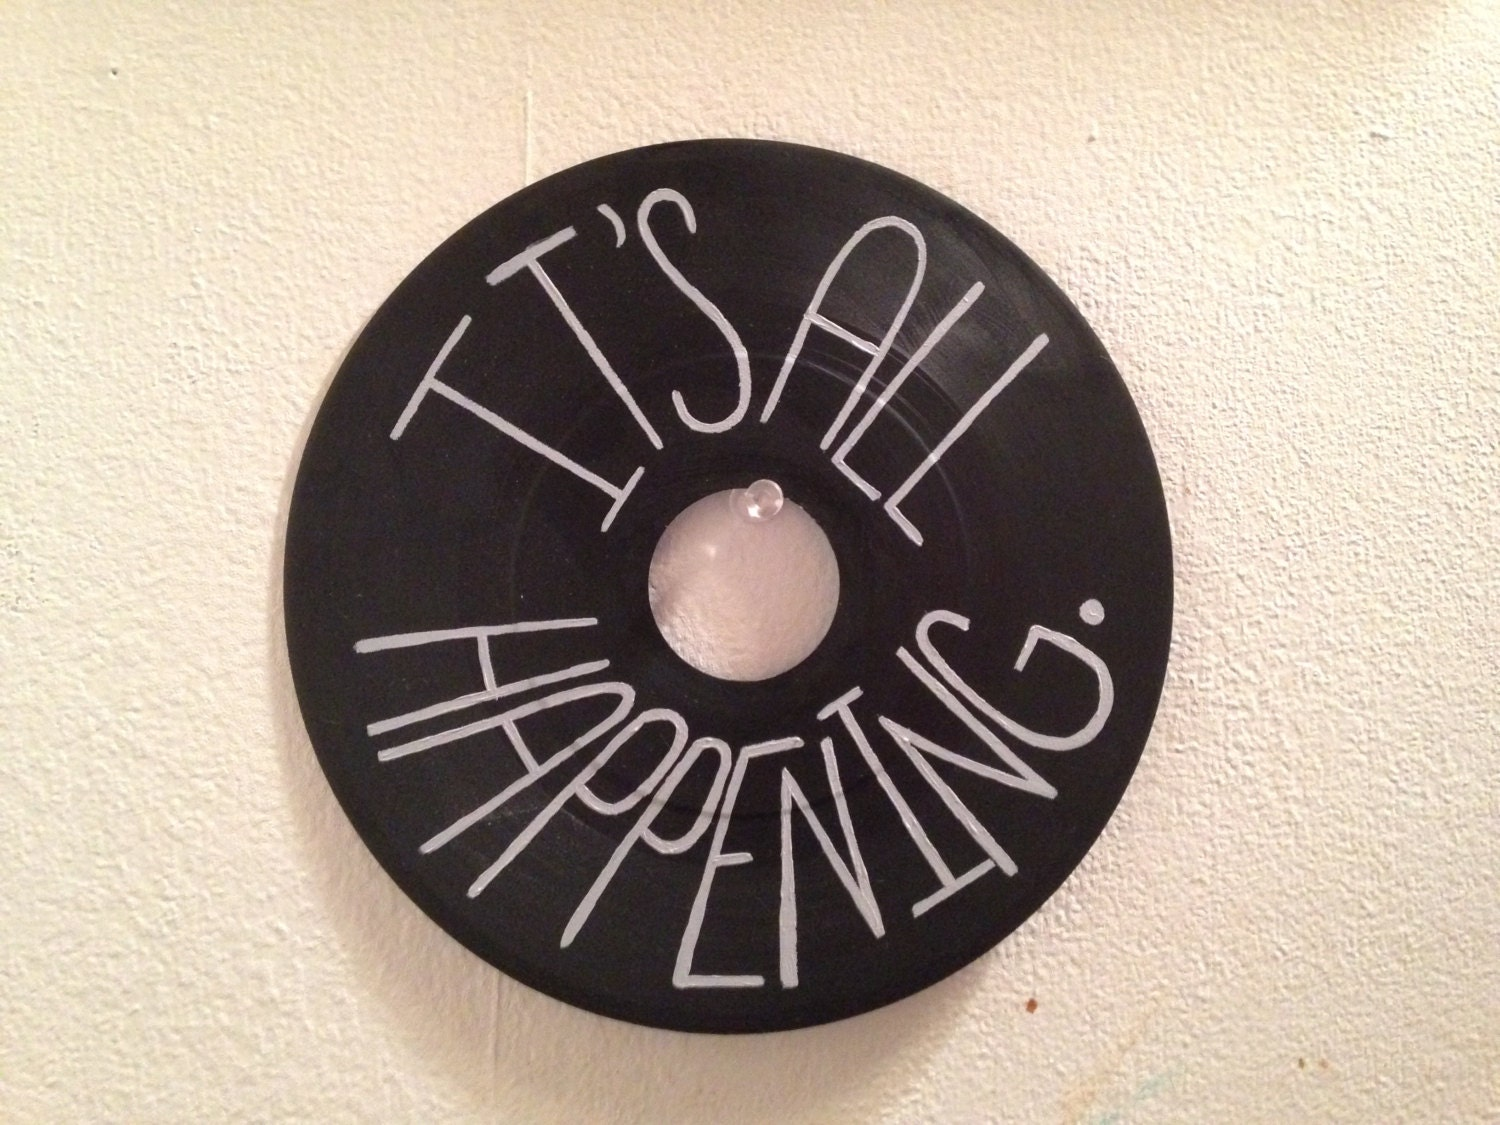 It S All Happening Painted Vinyl Record By Valderie On Etsy